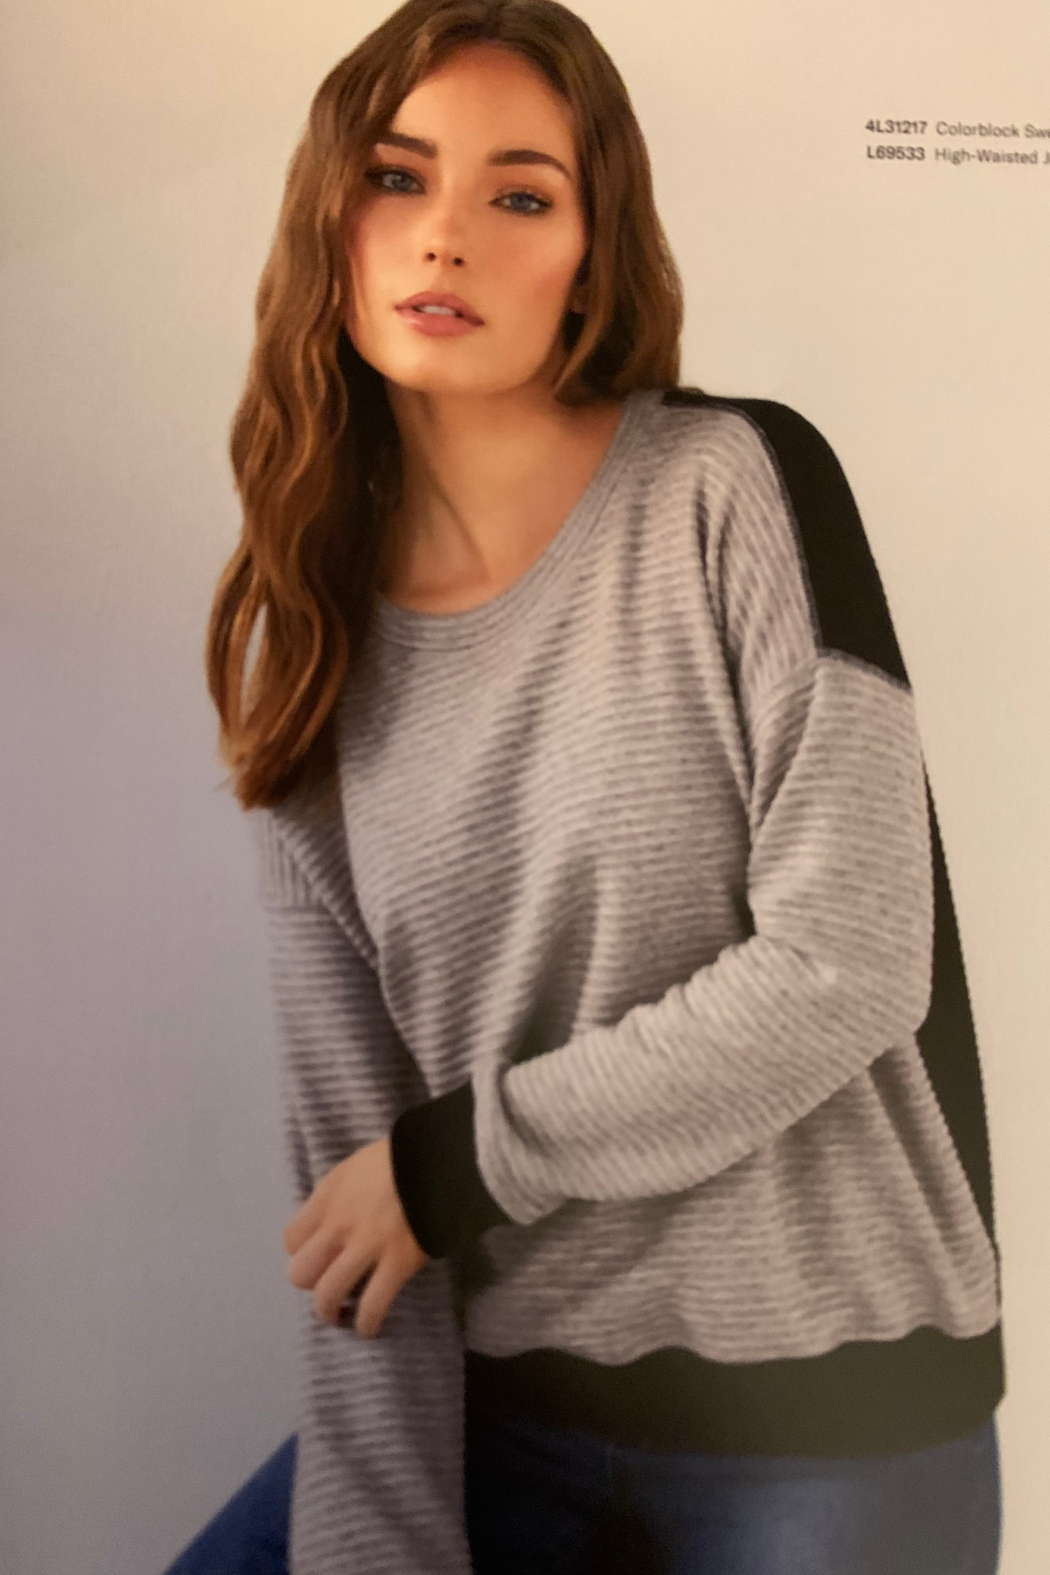 Karen Kane 4L31217 - Colorblock Sweater - Front Cropped Image